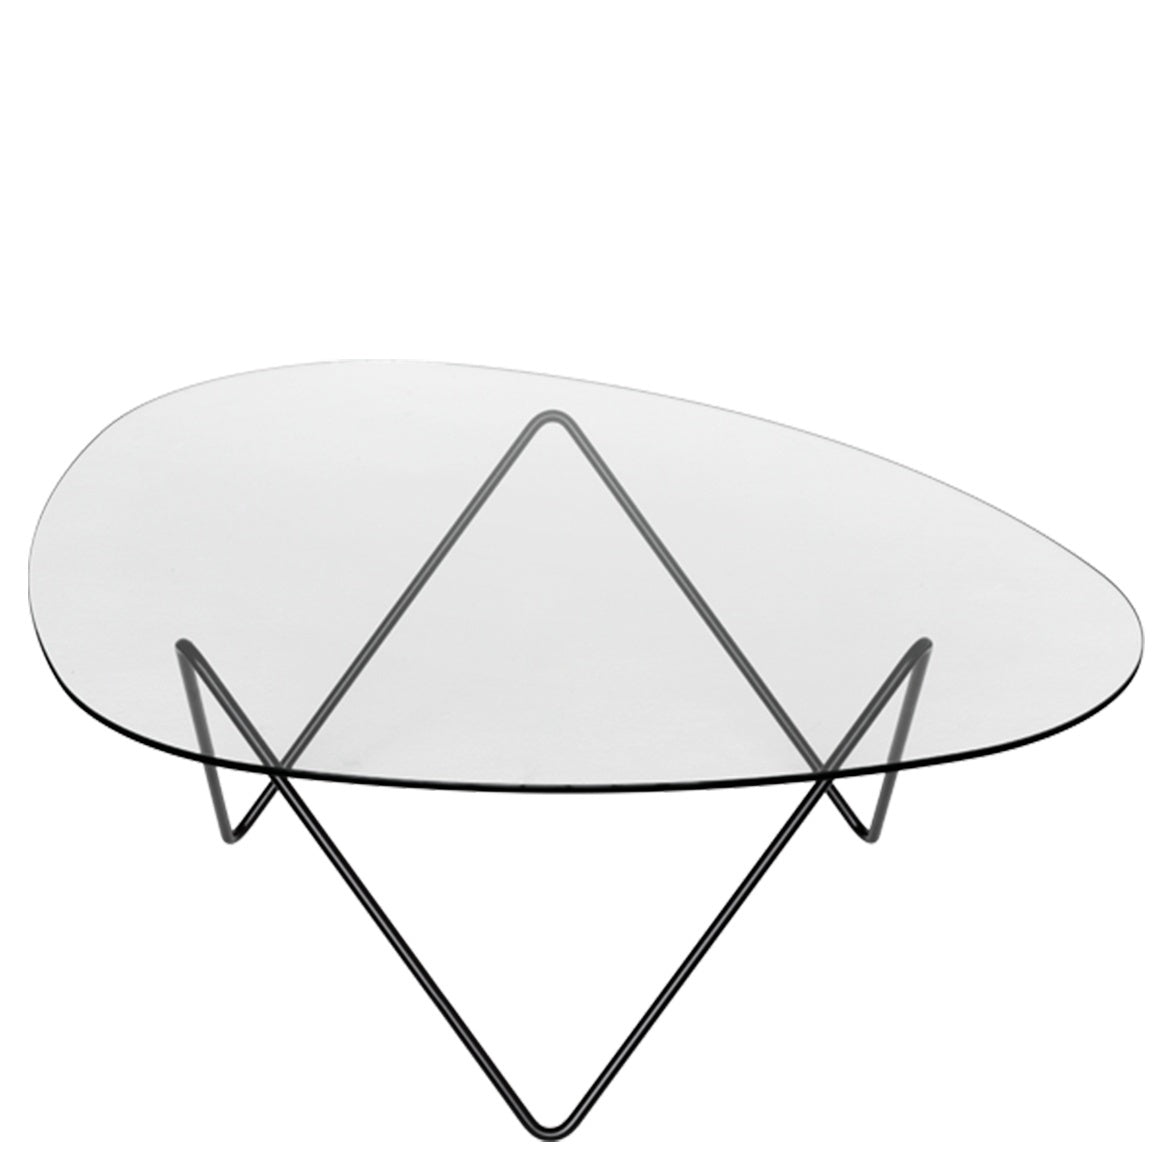 GUBI PEDRERA TABLE - Eclectic Cool  - 1